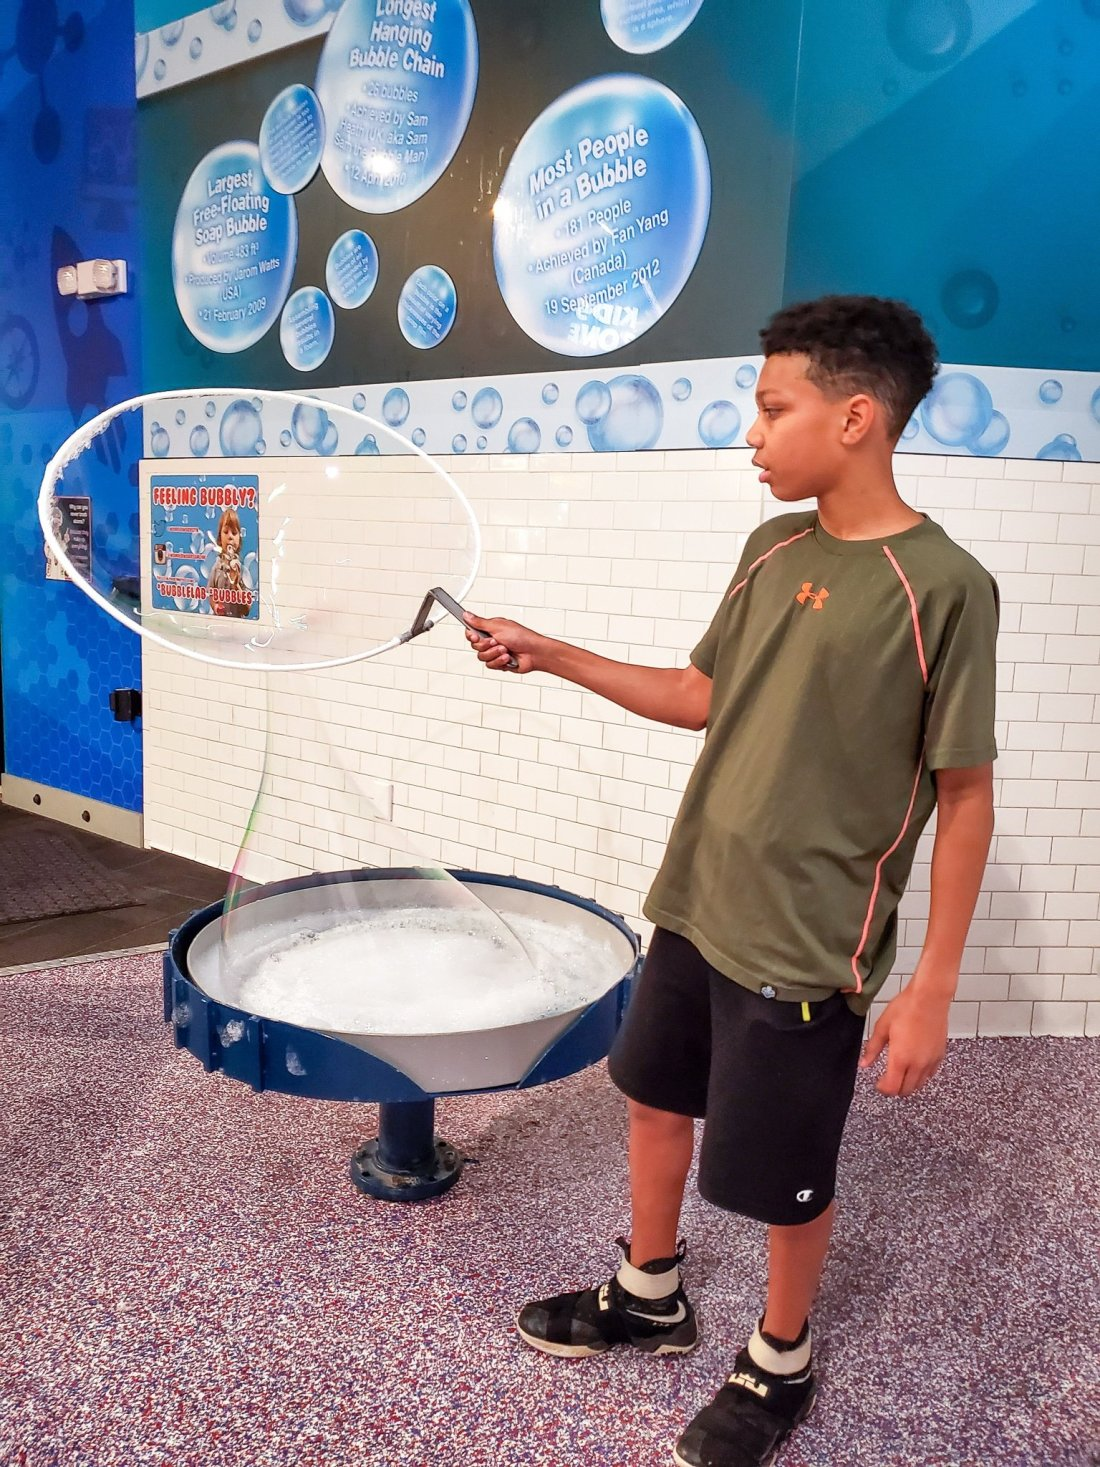 """WonderWorks Bubble Lab Malik. One of the topthings to do in Pigeon Forge, WonderWorks Indoor Amusement park, is one of the bestPigeon Forge Attractions. With over 35,000 square feet of """"edu-tainment,"""" WonderWorks is an amusement park for the mind. Read our full review on the blog."""